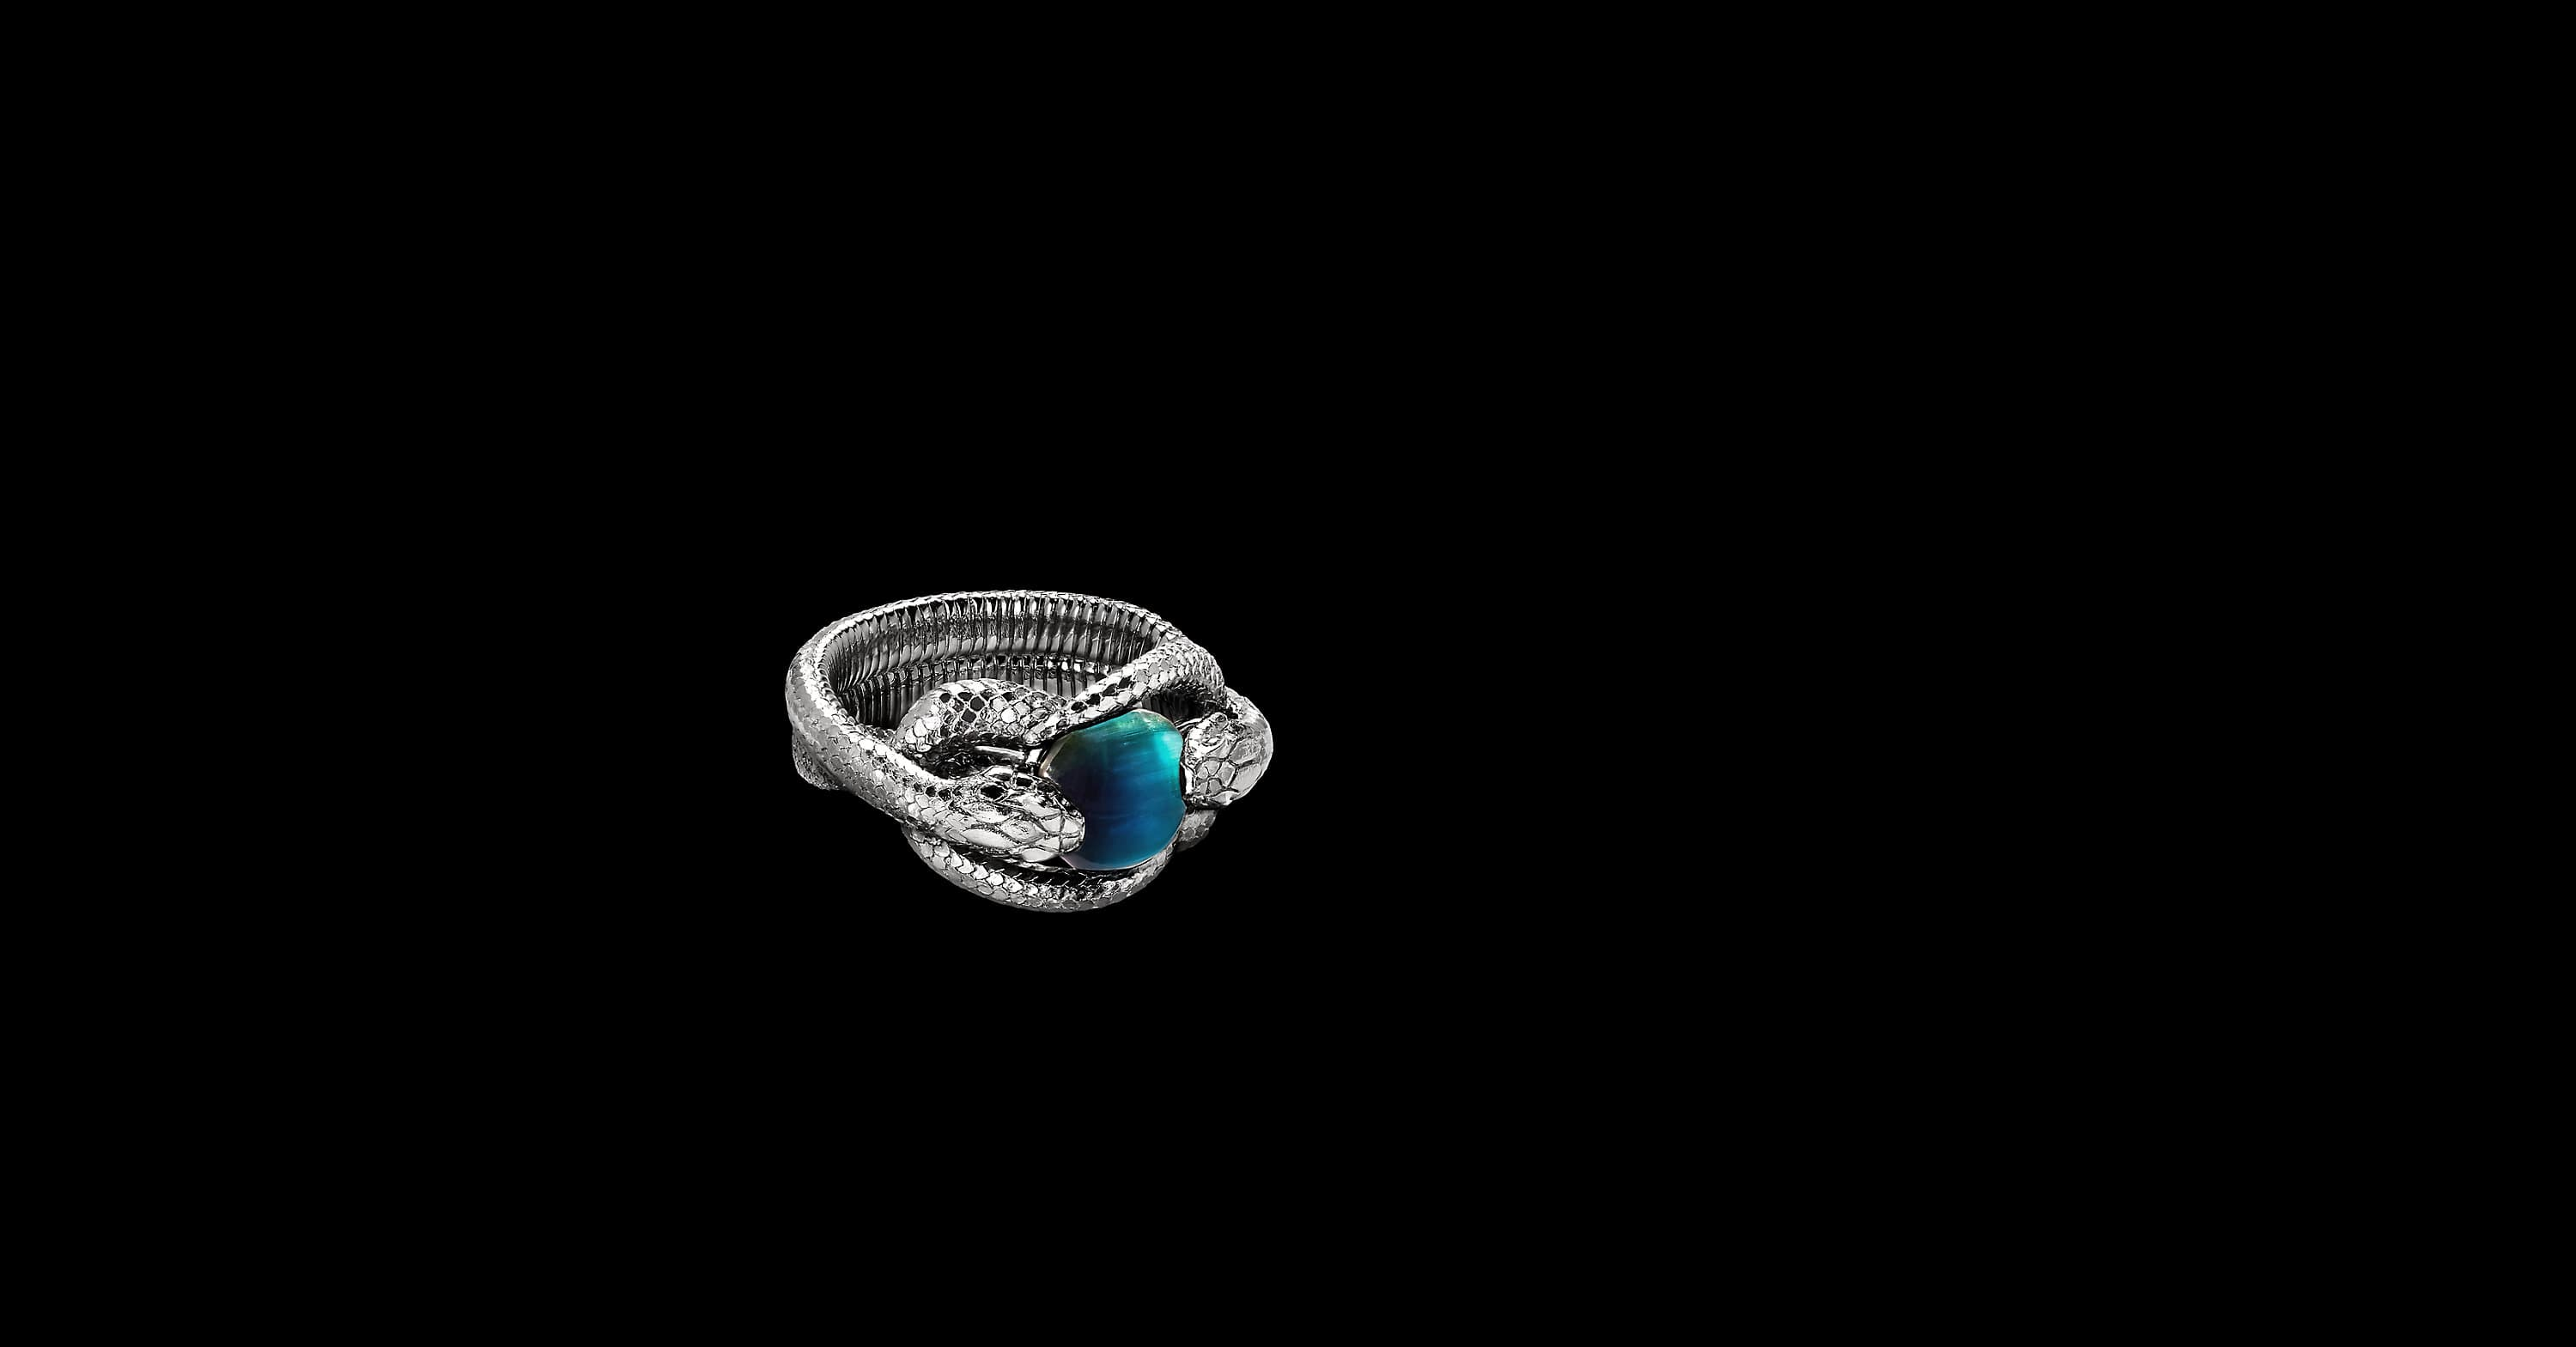 EY Signature Double Snake Ring in Platinum with Blue Cat's Eye Tourmaline